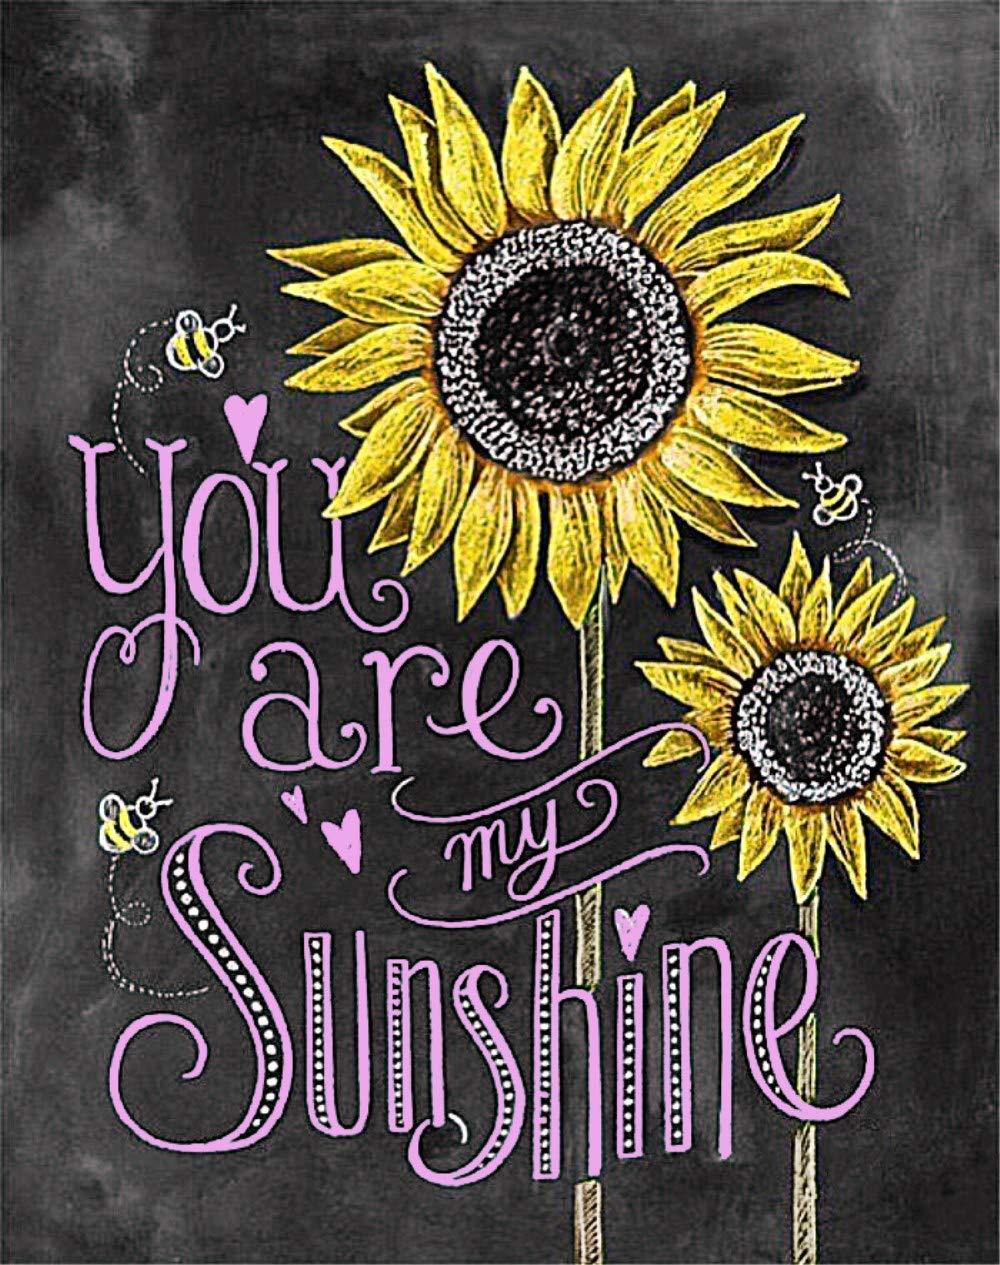 You are My Sunshine Diamond Painting Kit - pigpigboss 5D Full Diamond Painting by Numbers for Adults Sunflower Diamond Painting Art Gift for Kids (11.8 x 15.7 inches)